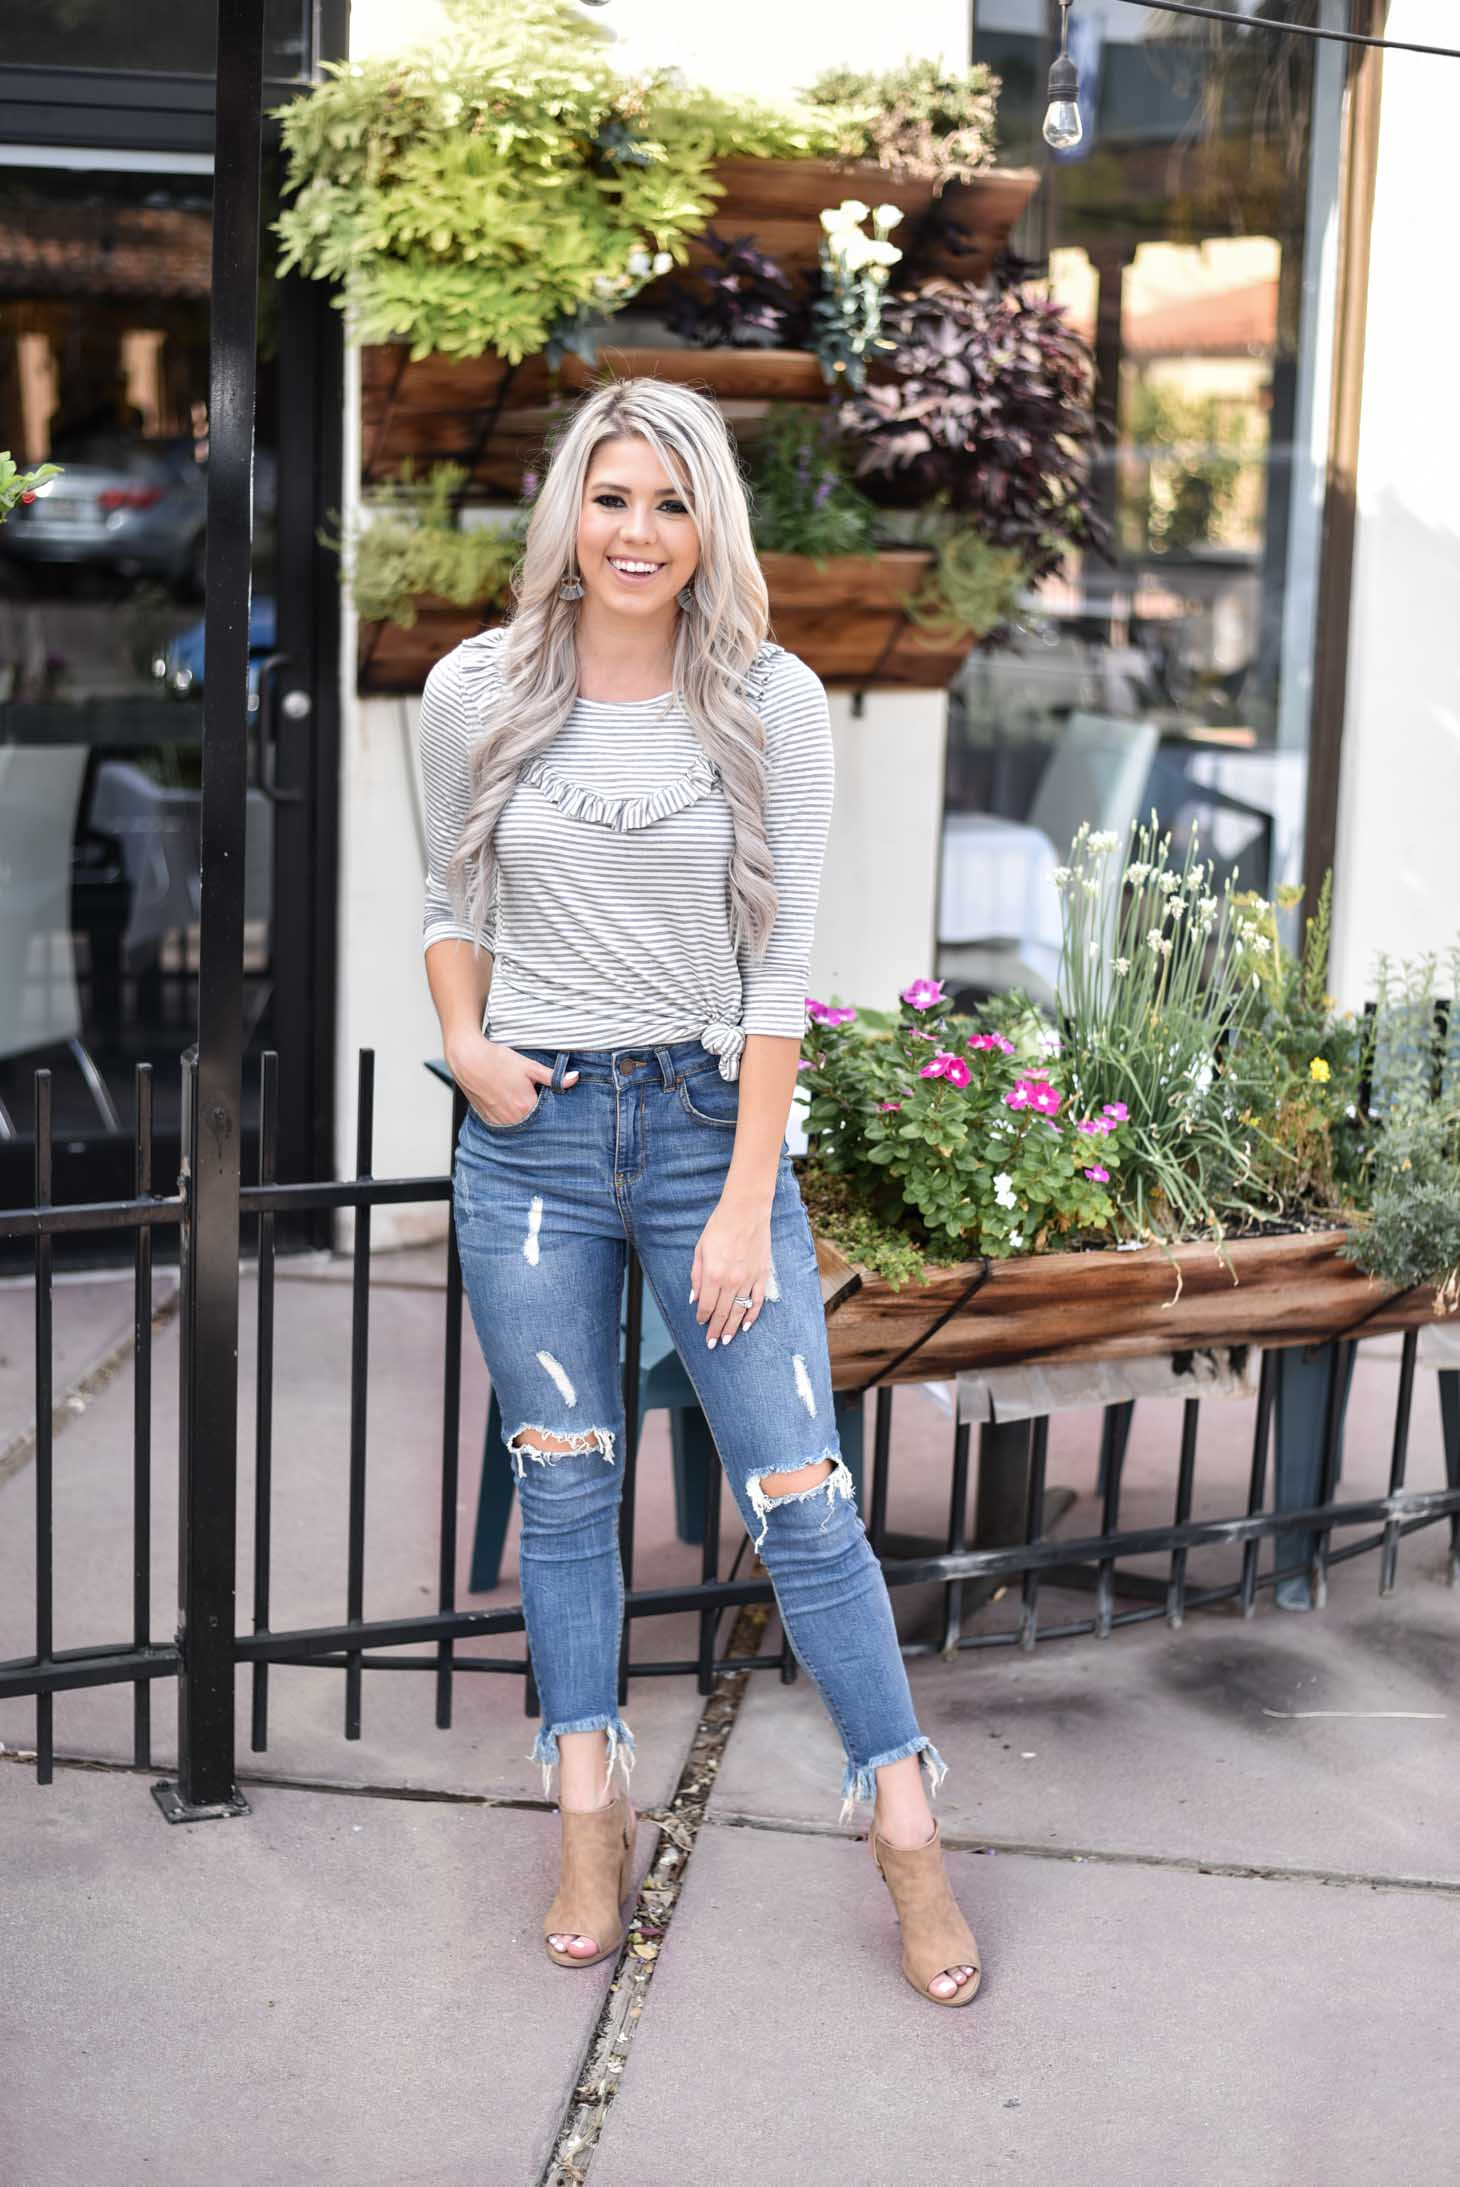 Erin Elizabeth of Wink and a Twirl shares two ways to style a Pink Lily Boutique striped top from day to night